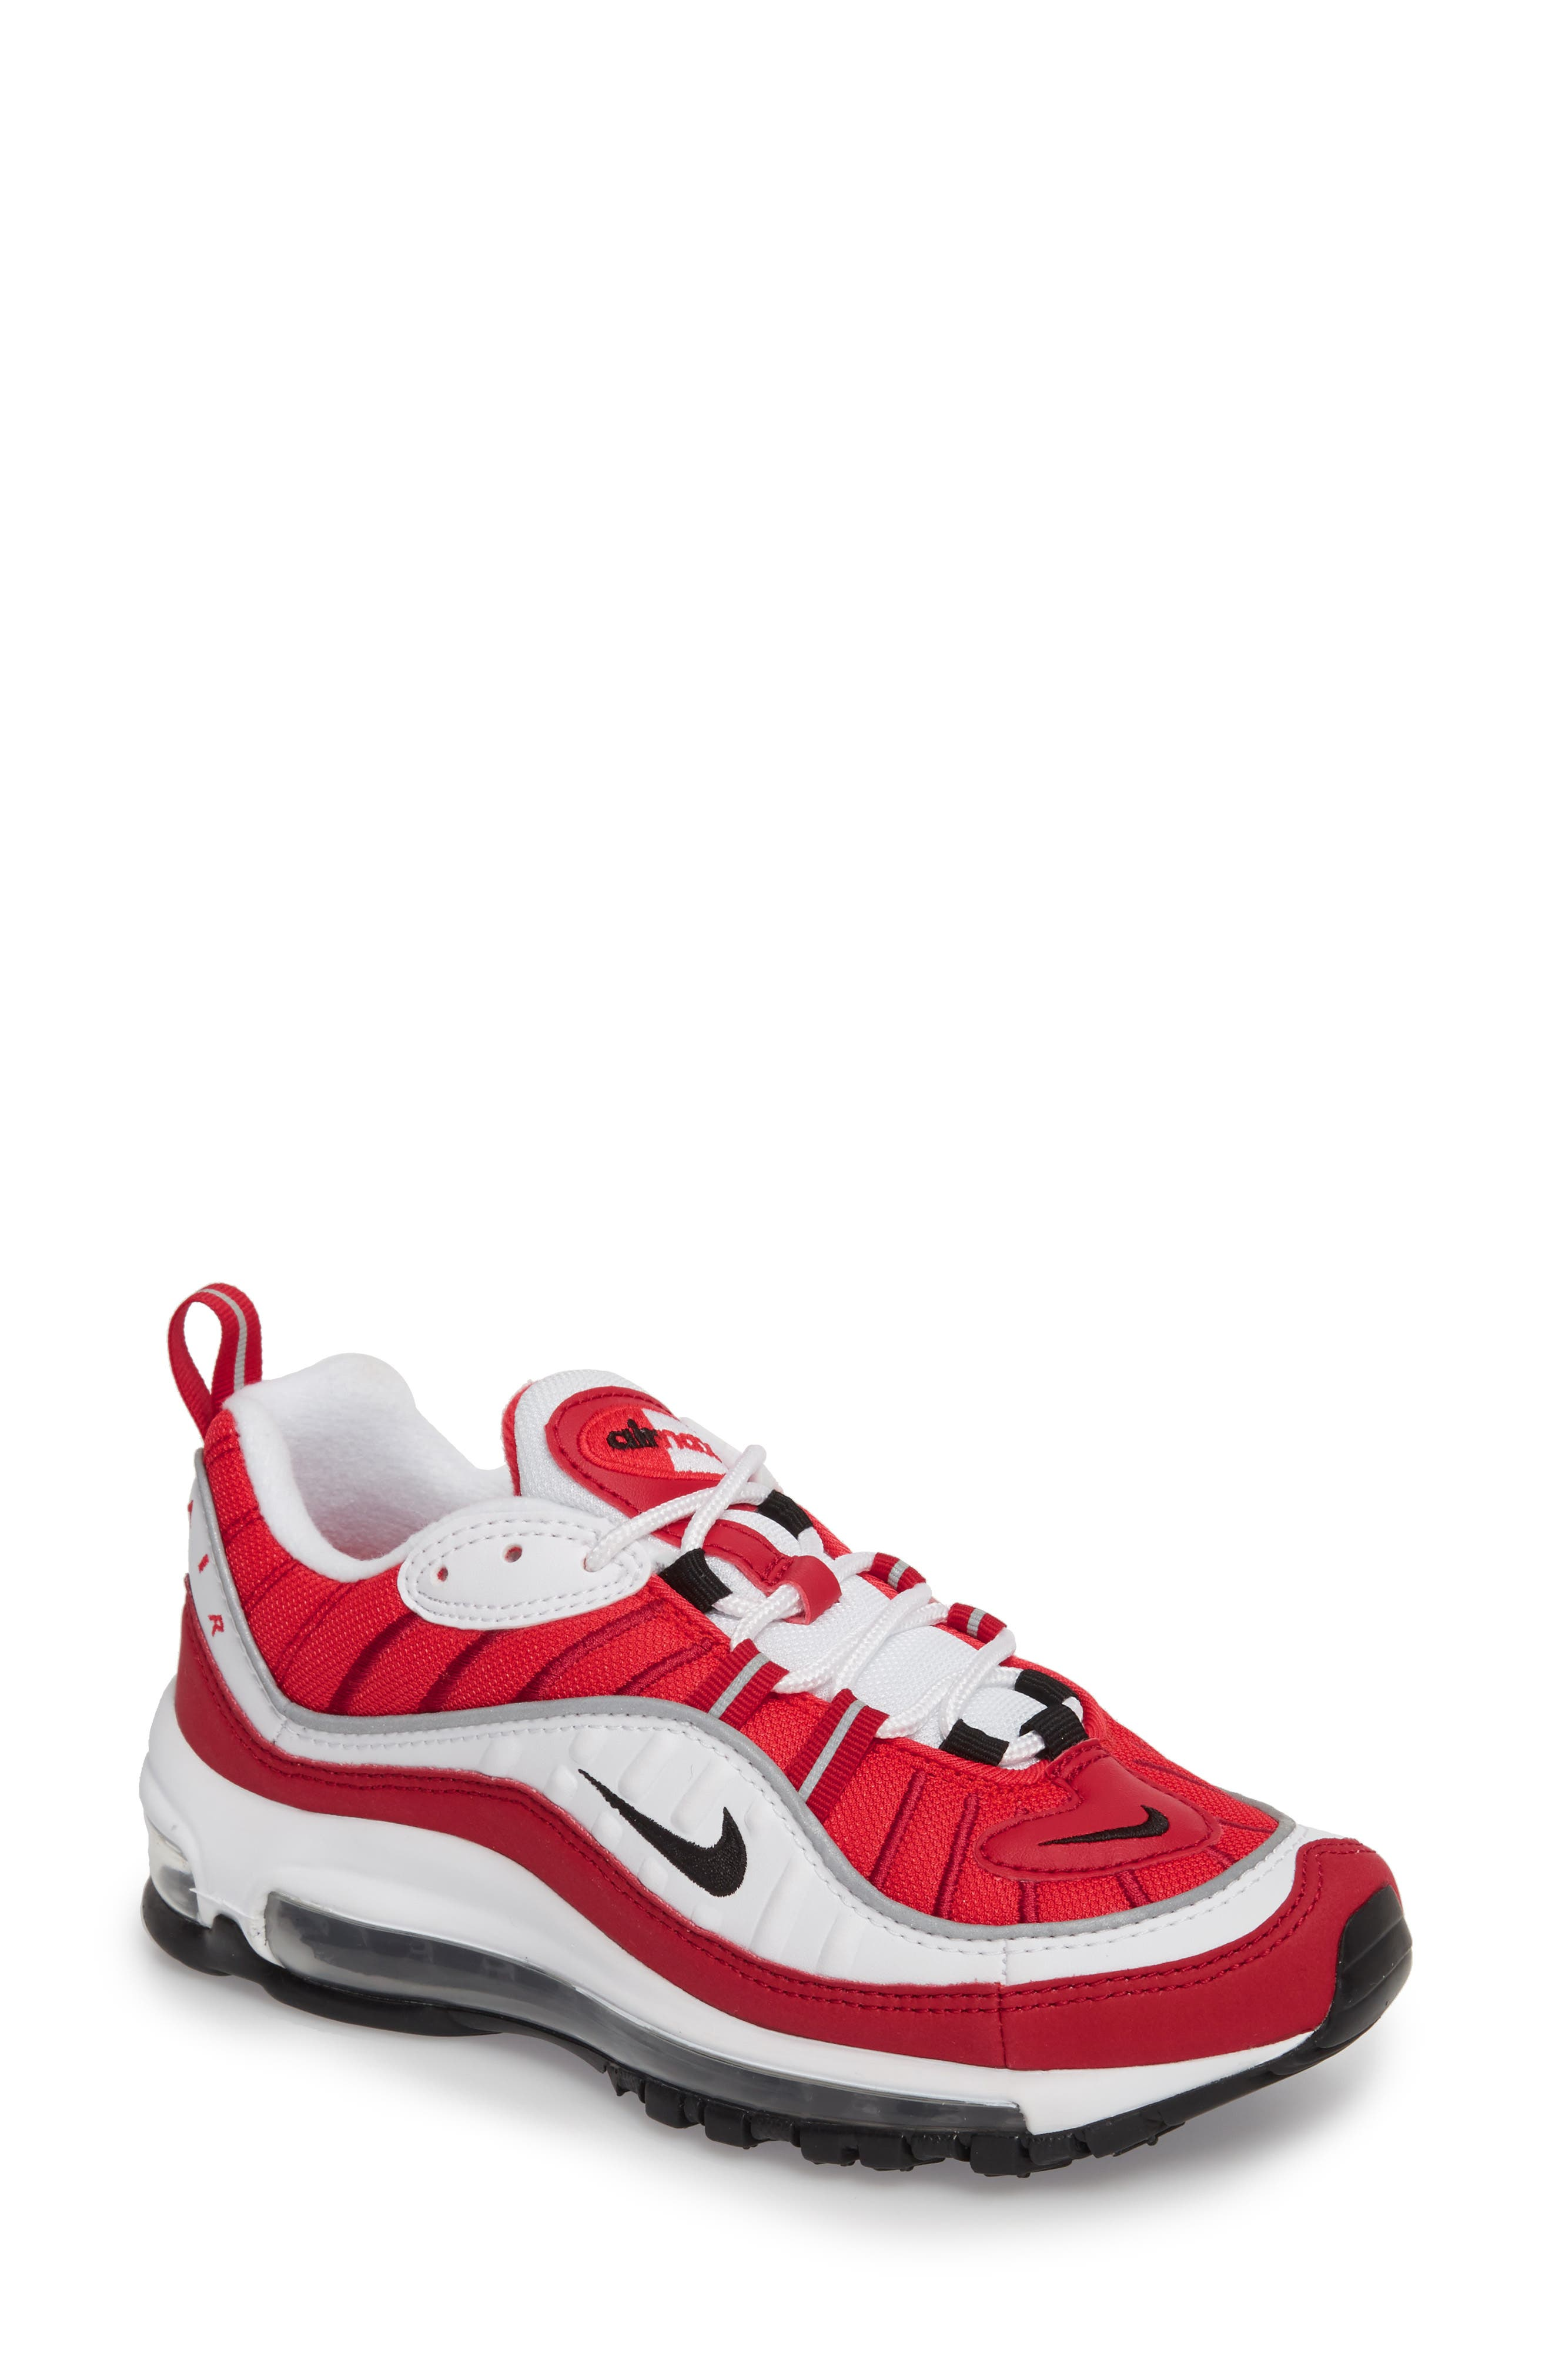 Nike Air Max 98 Running Shoe In White  Black  Gym Red  921dba29d